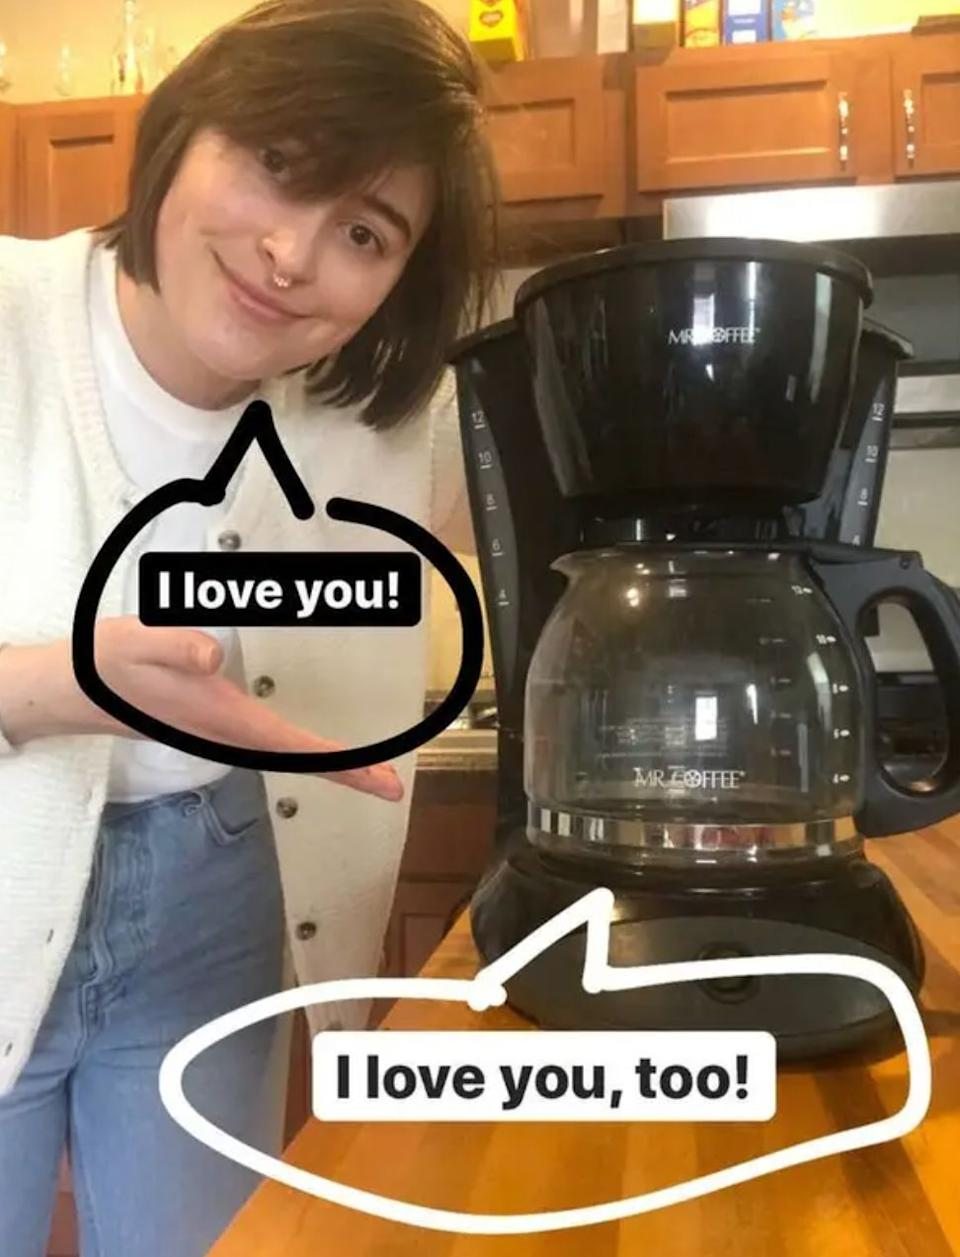 """It'llensure a classic, delicious cup o' joe will always be within arm's reach.<br /><br /><strong>Promising review:</strong>""""I'll admit, I can be prone to coffee snobbery now and again. I have just about every appliance, tool, and gadget to make coffee this way and that, but there's one I always come back to — the<a href=""""https://www.amazon.com/dp/B002YI2IG0?tag=huffpost-bfsyndication-20&ascsubtag=5817703%2C22%2C43%2Cd%2C0%2C0%2C0%2C962%3A1%3B901%3A2%3B900%3A2%3B974%3A3%3B975%3A2%3B982%3A2%2C16176000%2C0"""" target=""""_blank"""" rel=""""nofollow noopener noreferrer"""" data-skimlinks-tracking=""""5817703"""" data-vars-affiliate=""""Amazon"""" data-vars-asin=""""B002YI2IG0"""" data-vars-href=""""https://www.amazon.com/dp/B002YI2IG0?tag=bfheather-20&ascsubtag=5817703%2C22%2C43%2Cmobile_web%2C0%2C0%2C16176000"""" data-vars-keywords=""""cleaning,fast fashion"""" data-vars-link-id=""""16176000"""" data-vars-price="""""""" data-vars-product-id=""""15921554"""" data-vars-product-img=""""https://m.media-amazon.com/images/I/41-mJtflowL._SL500_.jpg"""" data-vars-product-title=""""Mr. Coffee 12-Cup Coffee Maker, Black"""" data-vars-retailers=""""Amazon"""">Mr. Coffee</a>. My dad has used a Mr. Coffee basically every morning since the beginning of time, so when I got my first apartment — finally free of the """"no cooking appliances"""" rule ubiquitous to college dorm life — of COURSE I bought the cheapest 12-Cup Mr. Coffee drip pot I could find.<strong>That same pot has been with me ever since (for over six years!), quickly brewing up cup after steaming cup of coffee for my roommates, friends, and me, never failing to make my morning and little better.</strong>It has also survived many, many moves while packed in pretty precarious boxes. TL;DR: it's also durable.<br /><br />If you've somehow never made drip coffee before, listen, it's really easy. Just pop in a filter, fill it with coffee, fill the machine with water, and flip the switch. Boom! You've got java.<strong>Most mornings, flipping literally one switch is all I feel capable of, and Mr. Coffee thinks t"""